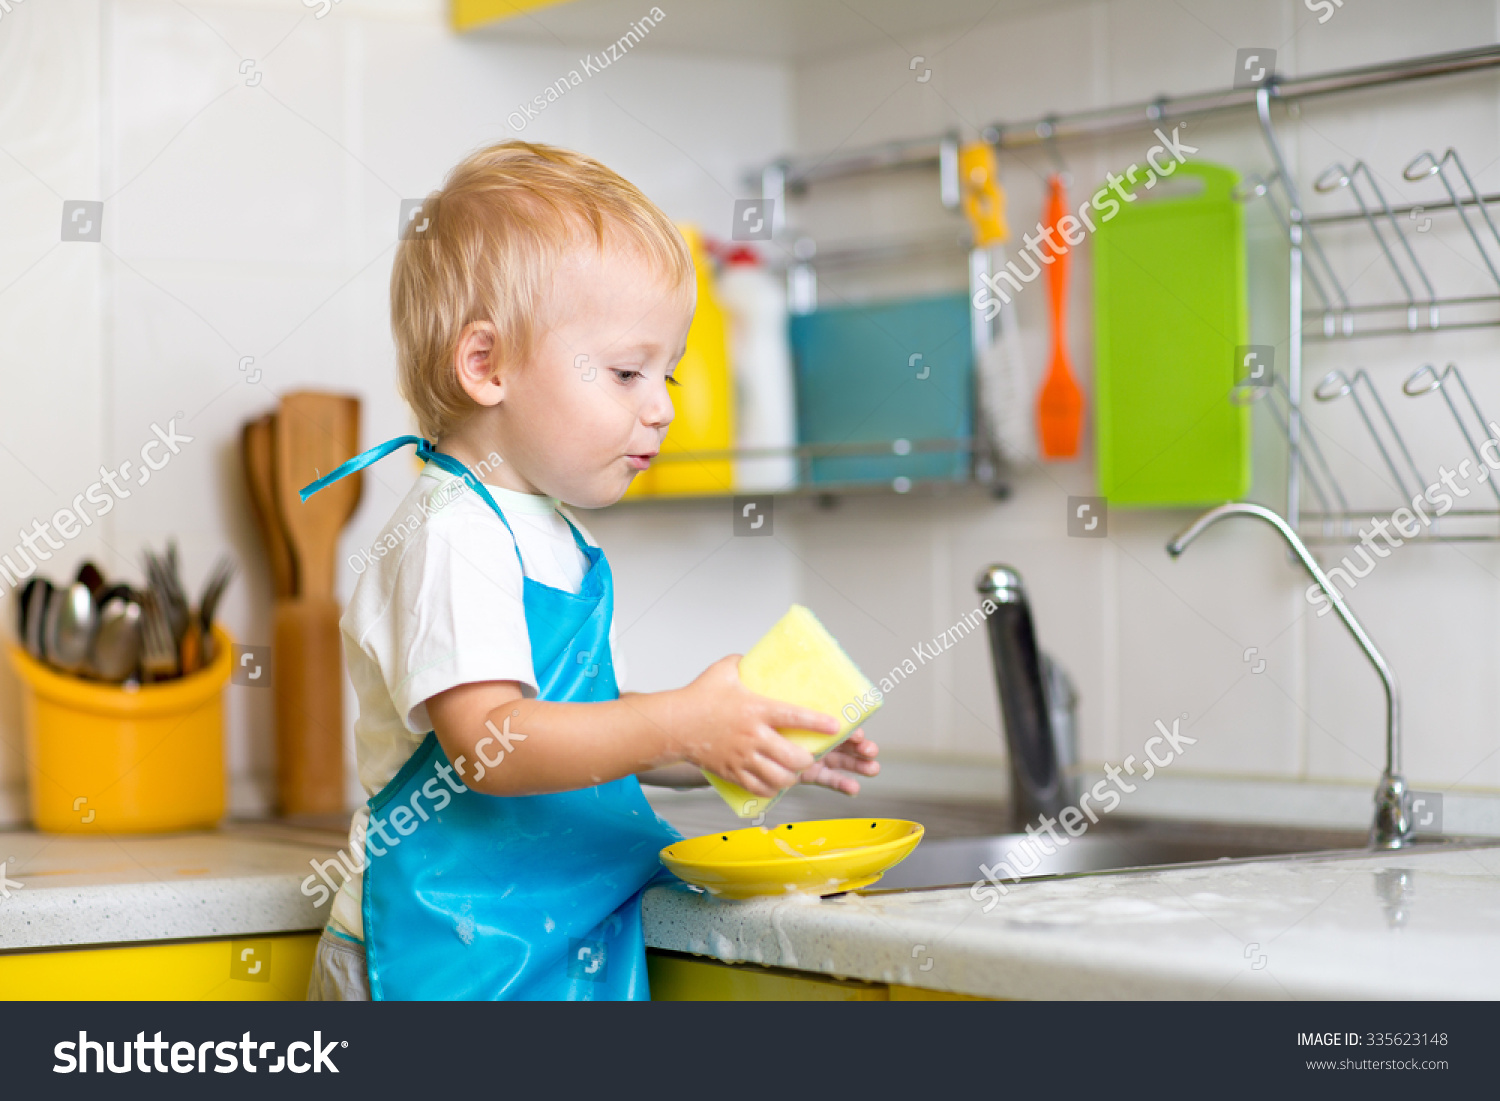 Child Boy Cleaning Kitchen After Dinner Stock